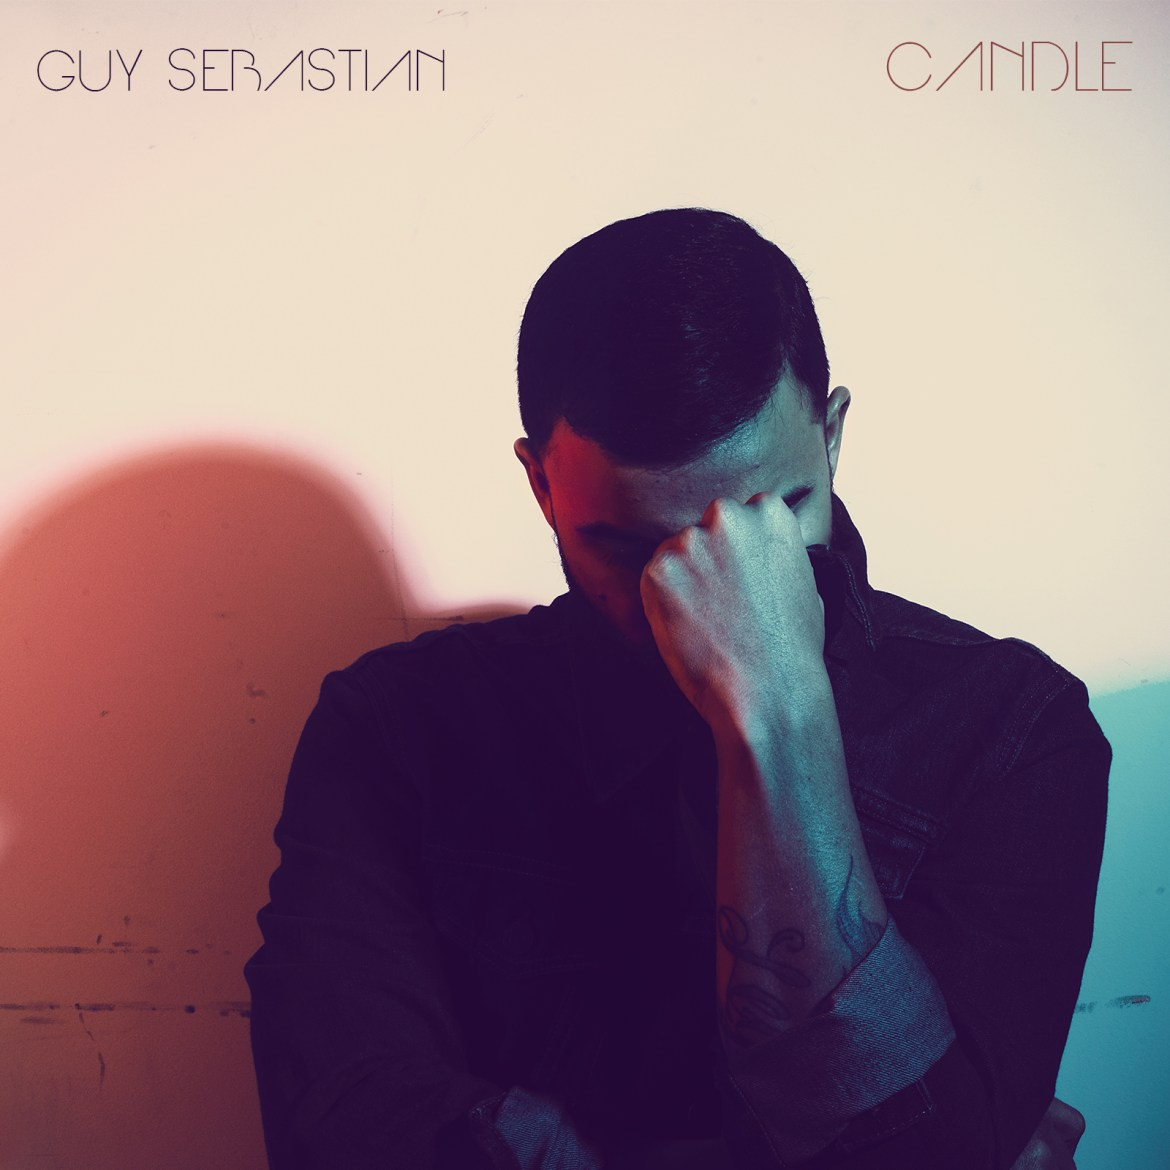 new music alert-candle-by-guy sebastian-australia-indie pop-new indie music-indie music-wolfinasuit-wolf in a suit